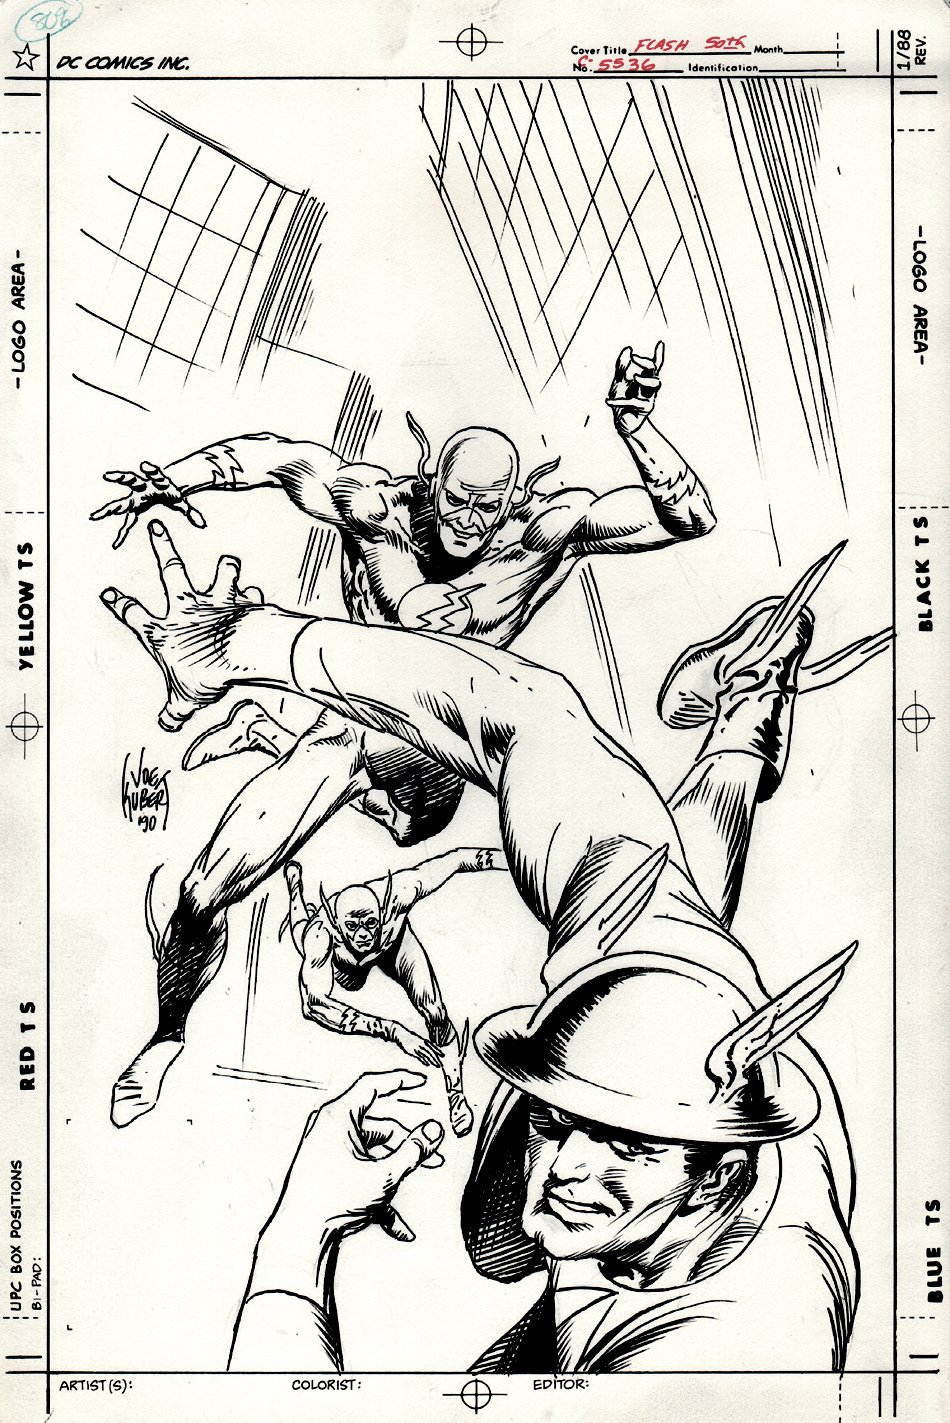 Flash Special #1 Cover (Golden, Silver, Bronze Age FLASH Heroes) 1990